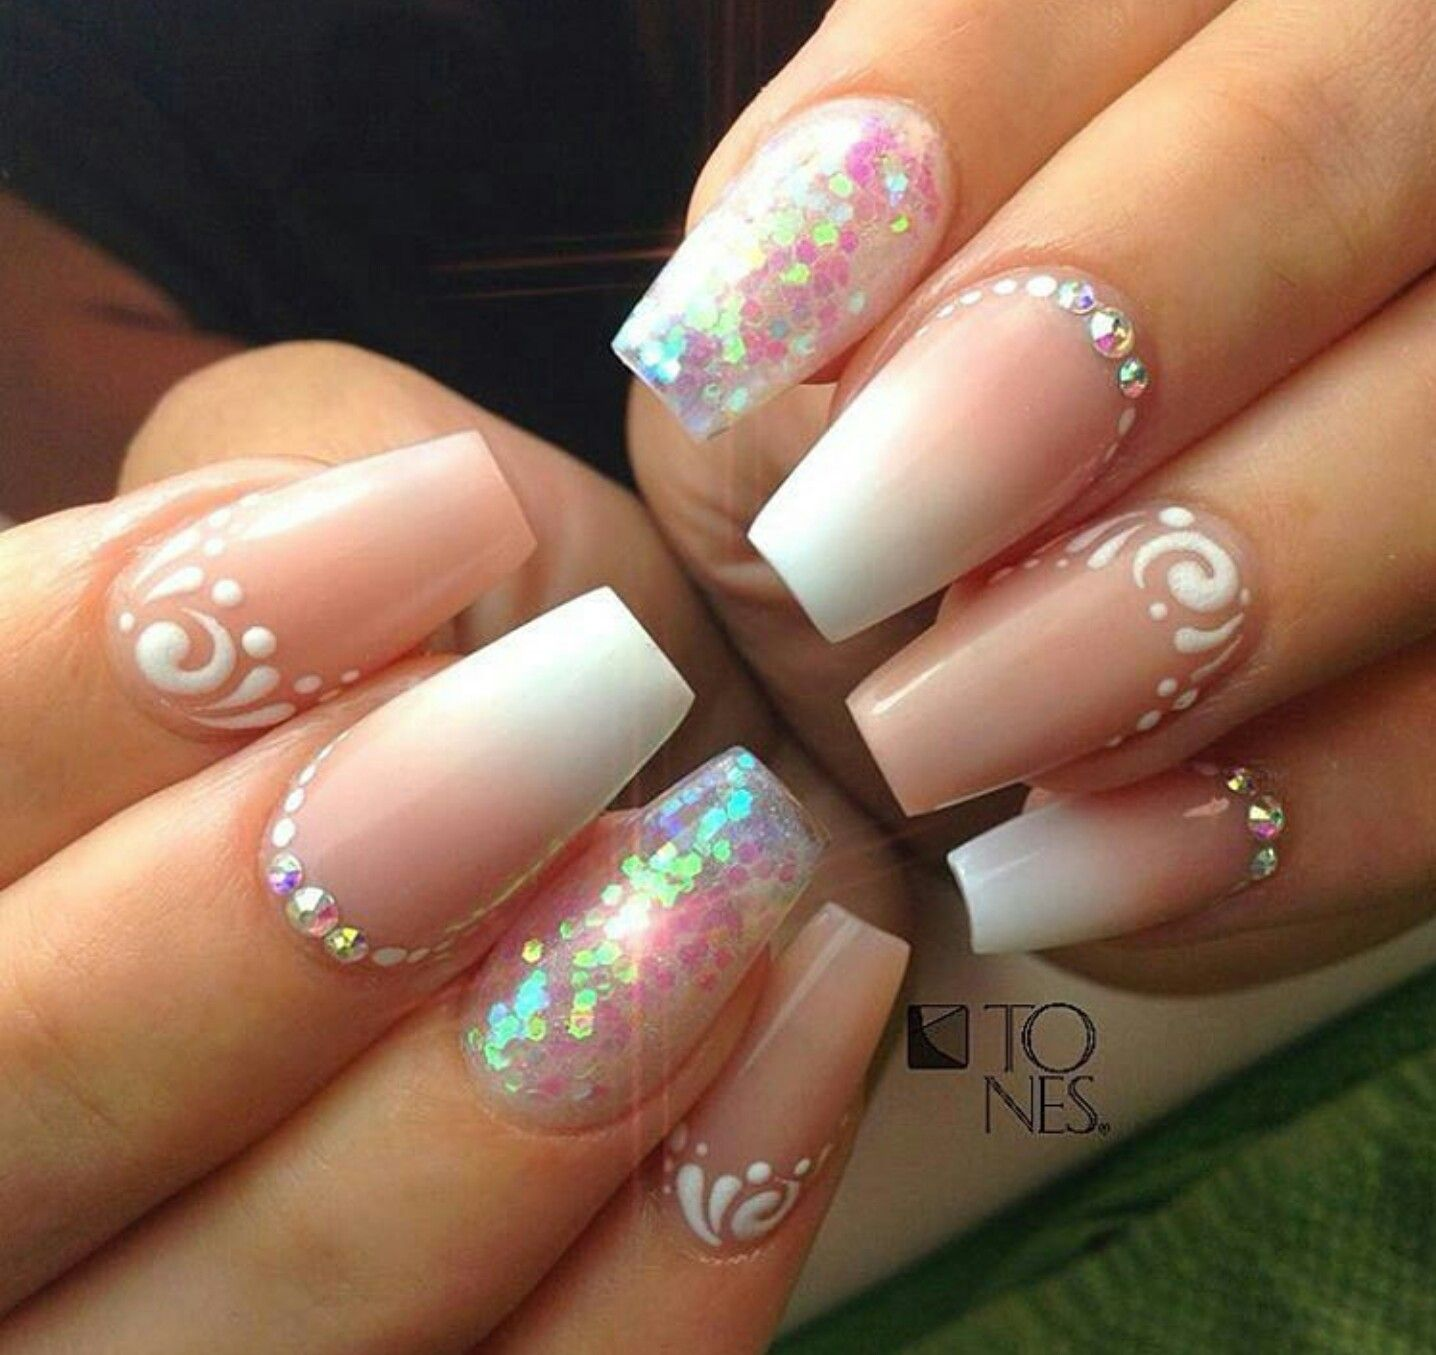 Pin by 💛🌟Queen I Am 🌟💛 on NAIL GAME | Pinterest | Nail nail ...